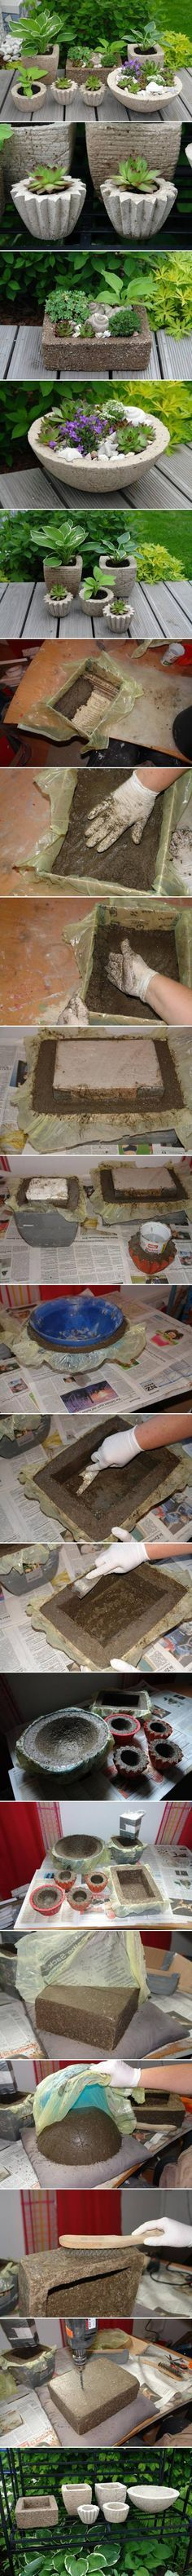 DIY Variety of Cement Planters